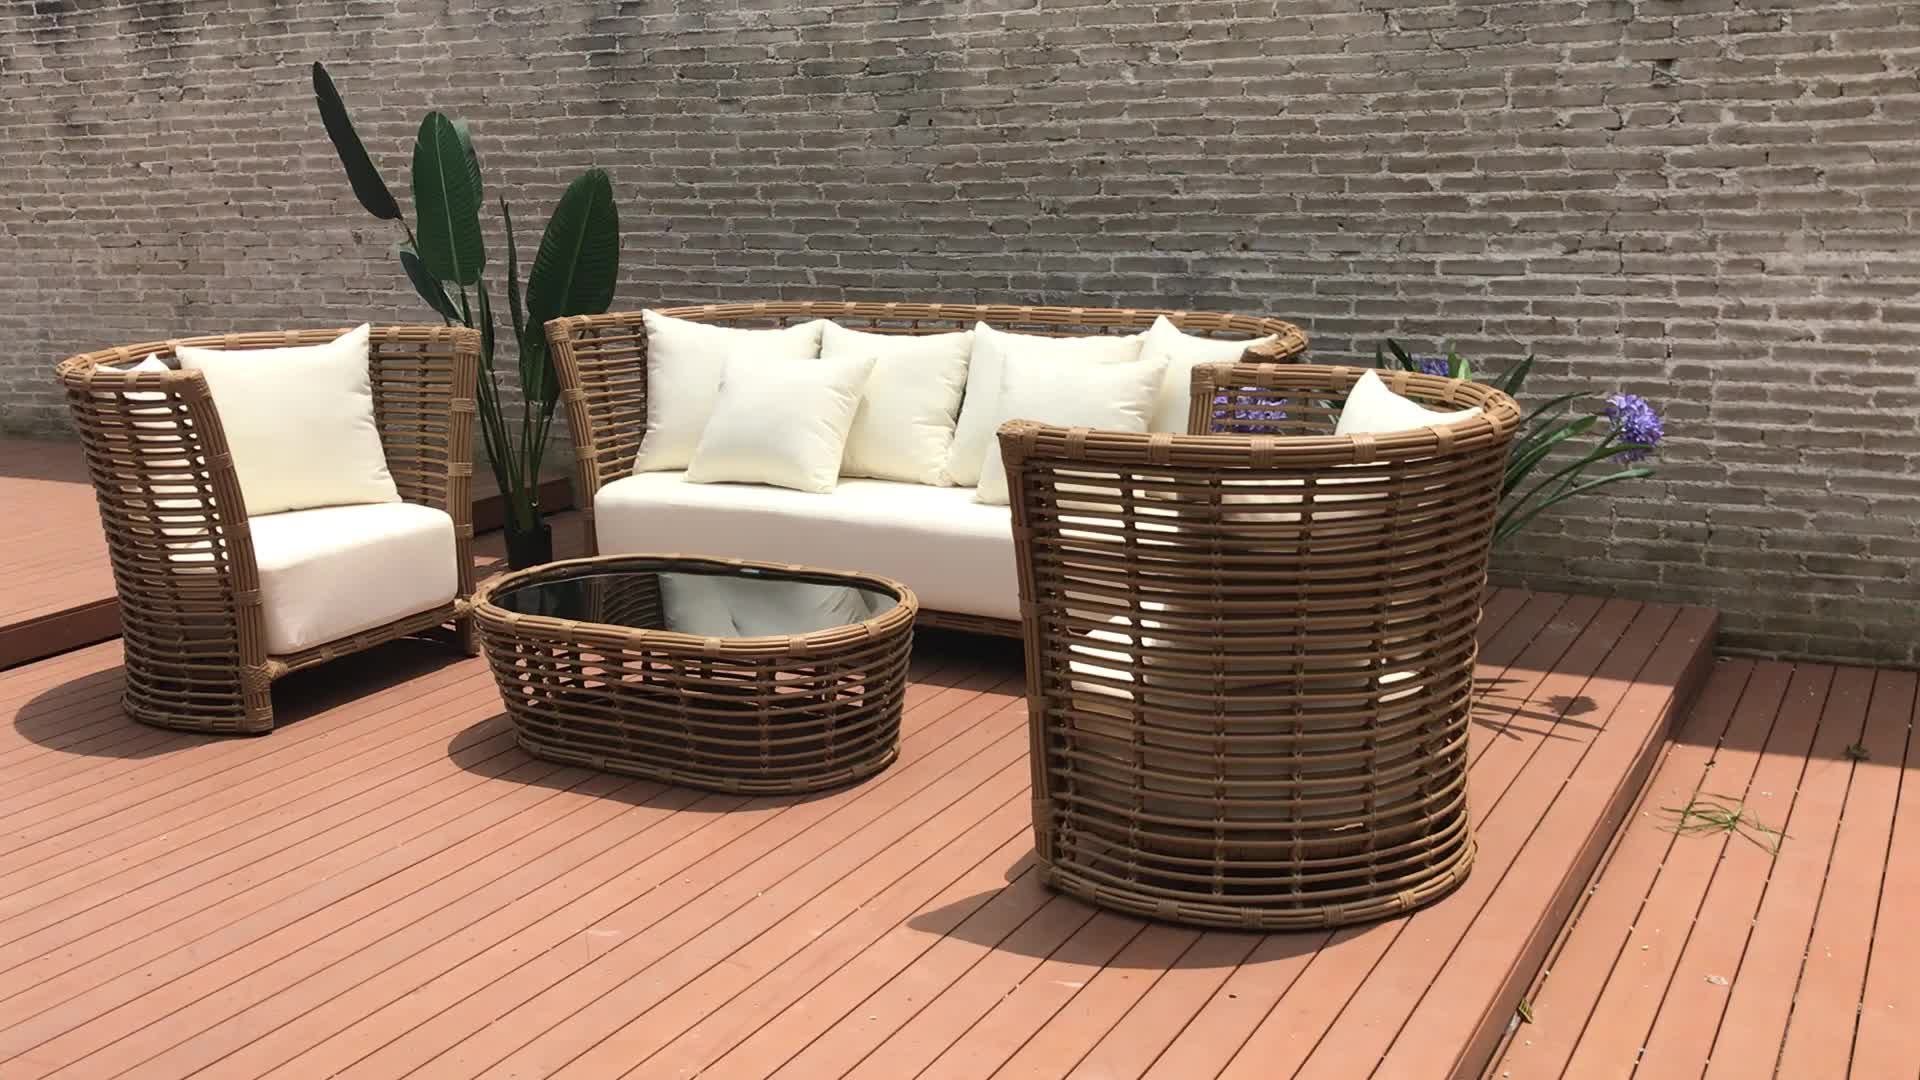 Hot sale synthetic wicker outdoor furniture rattan sofa set